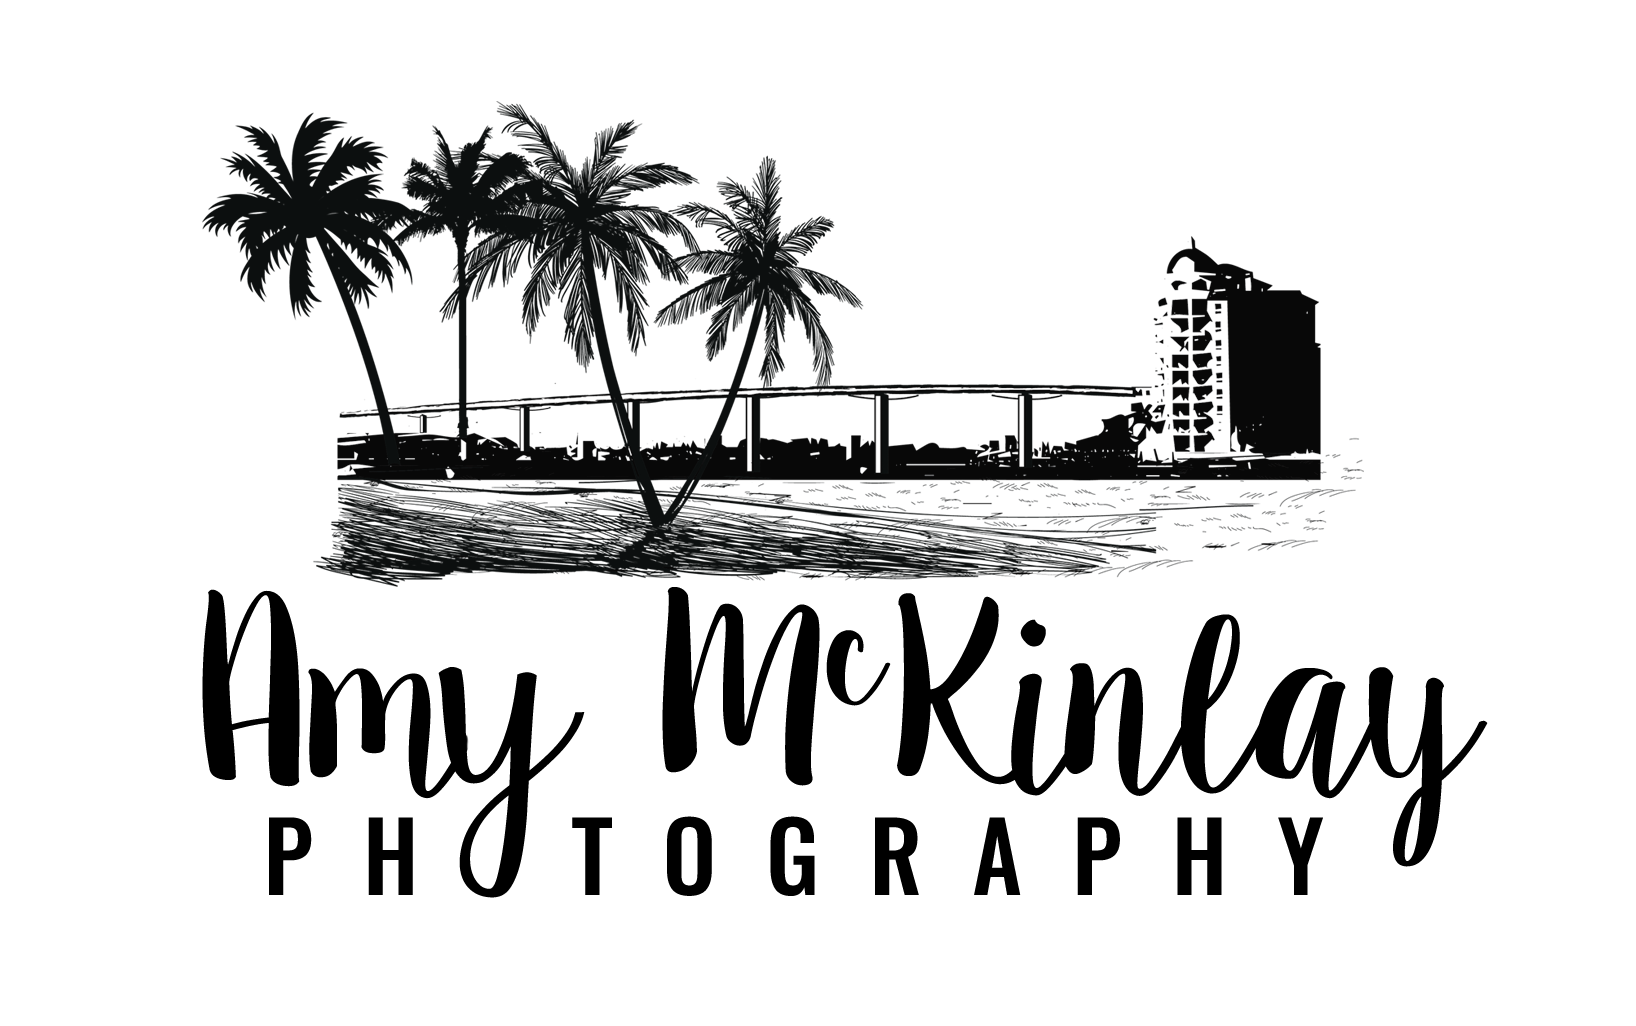 Amy McKinlay Photography